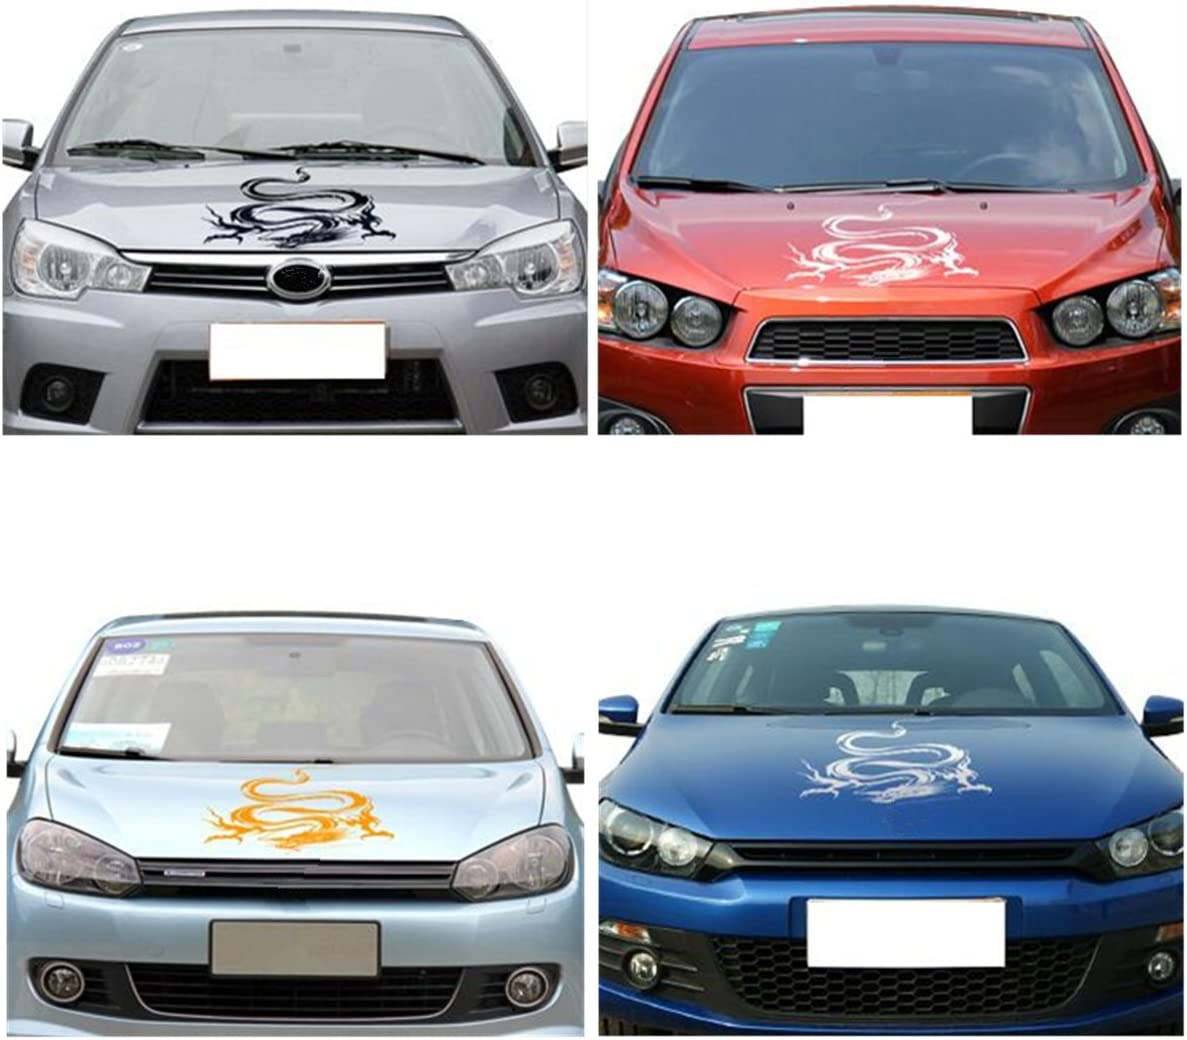 Oda Dragon Totem Scratching Decal Car Stickers and Decals Vehicle Body Sticker Auto Body Styling Stickers Universal for Car Head Hood Modification Decoration